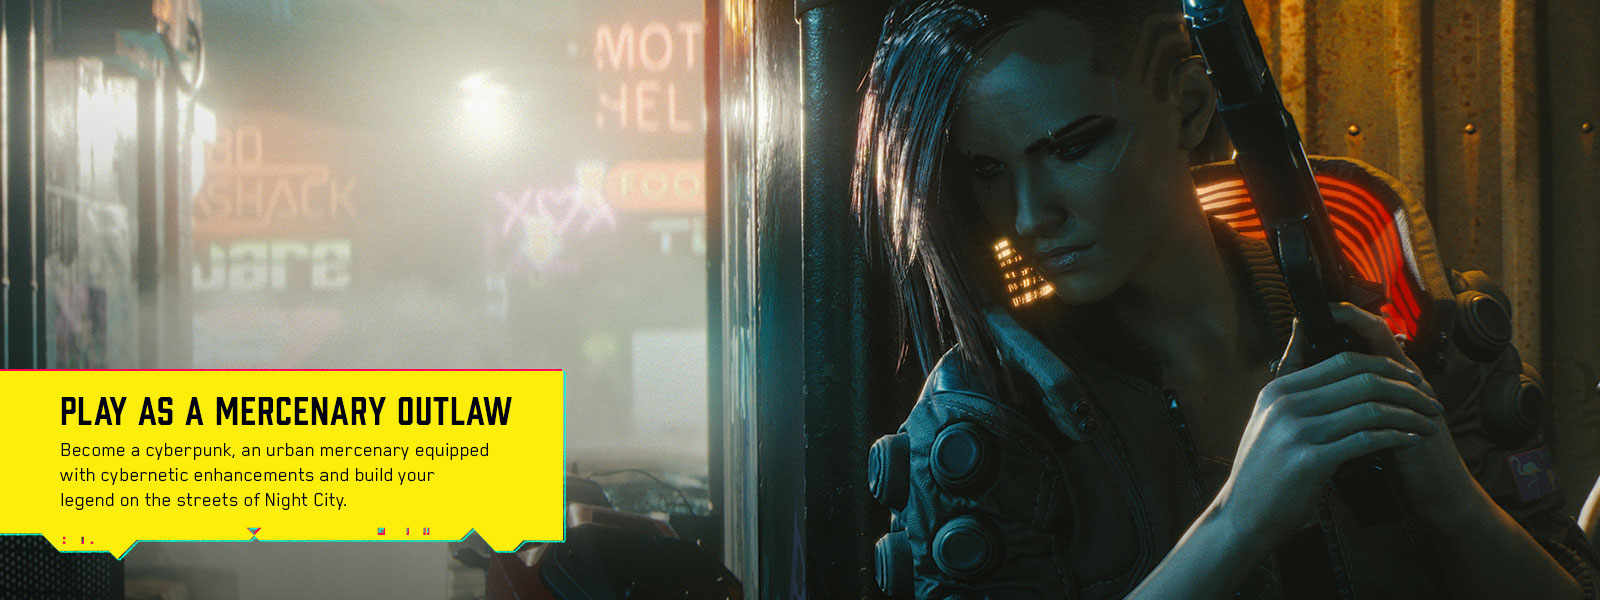 Become a cyberpunk, an urban mercenary equipped with cybernetic enhancements and build your legend on the streets of Night City.